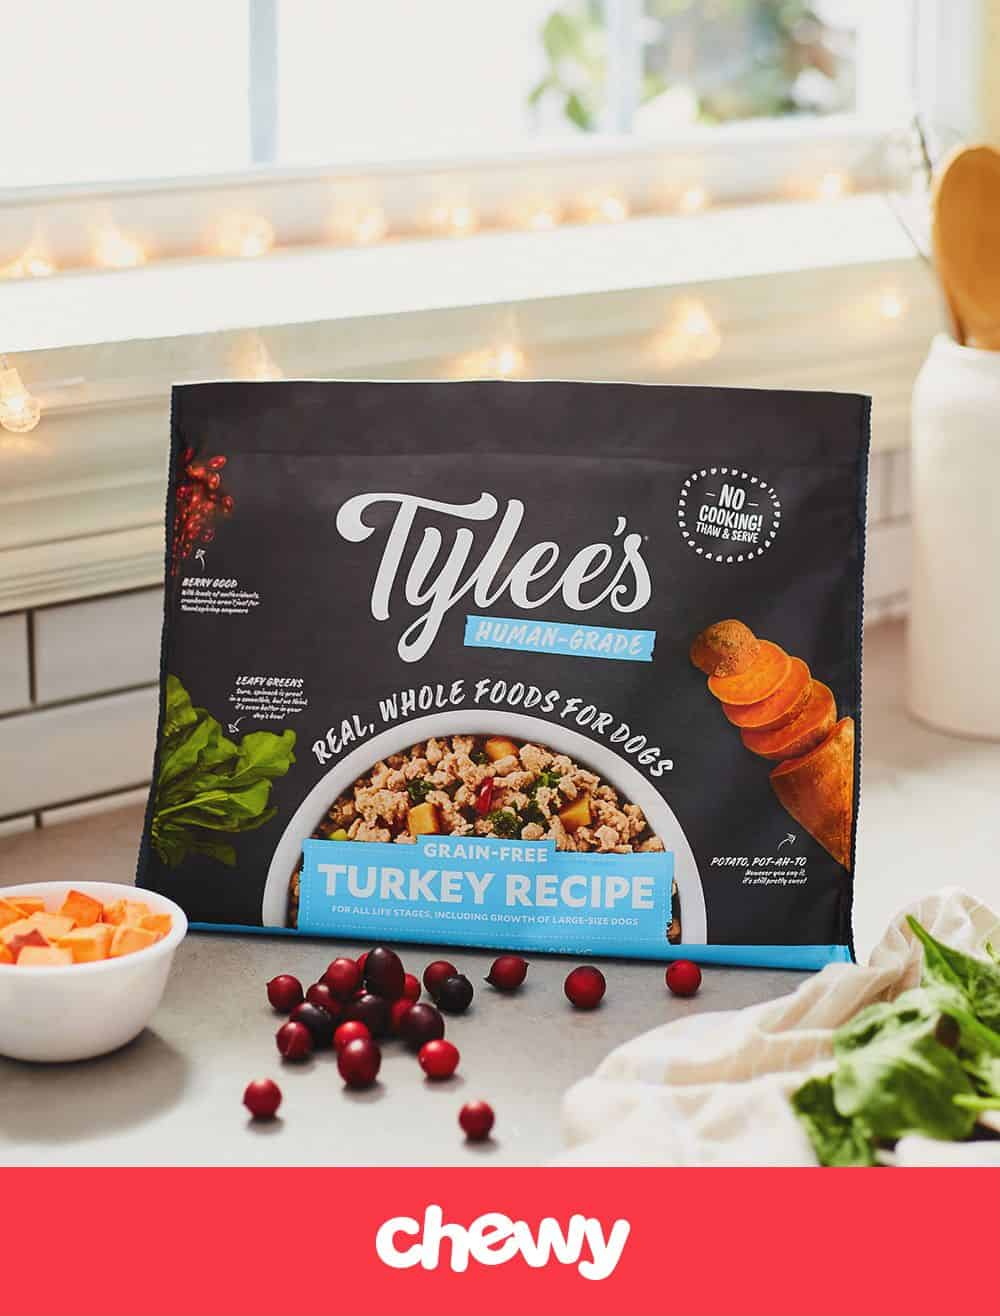 Tylee's Dog Food: 2020 Reviews, Recalls & Coupons 6